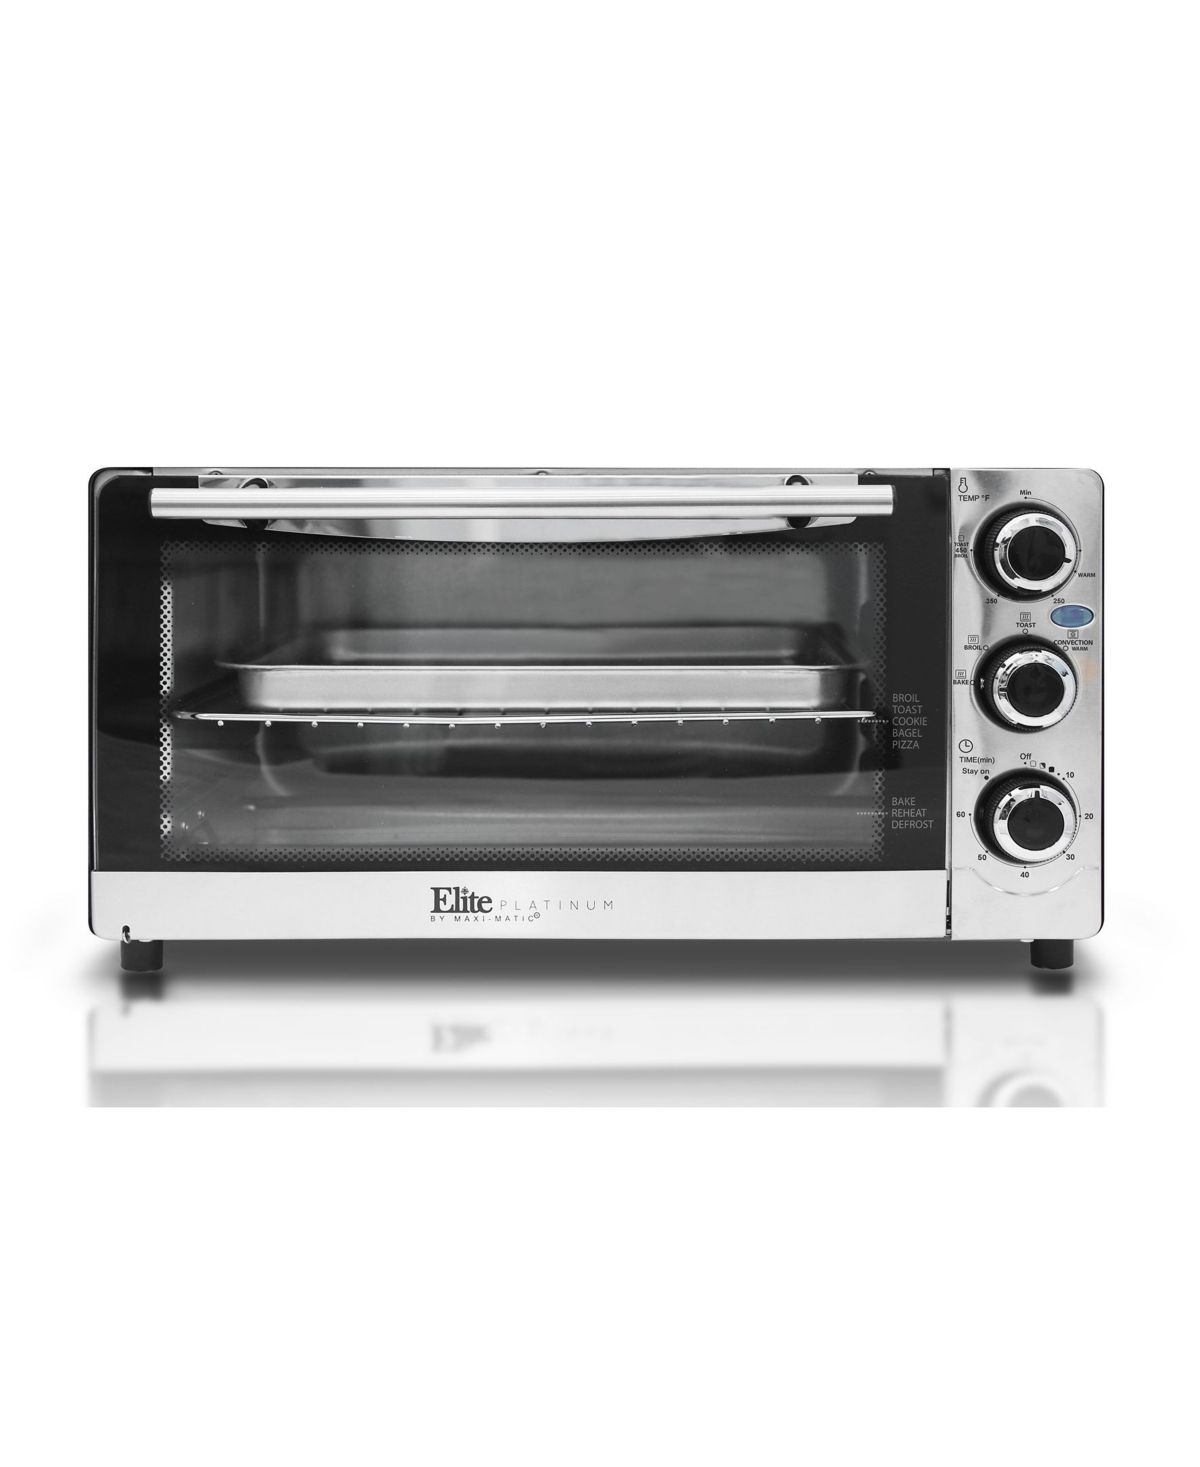 Elite By Maxi Matic Elite Platinum Stainless Steel 6 Slice Convection Toaster Oven Broiler Reviews Home Macy S Toaster Stainless Steel 6 Slice Toaster